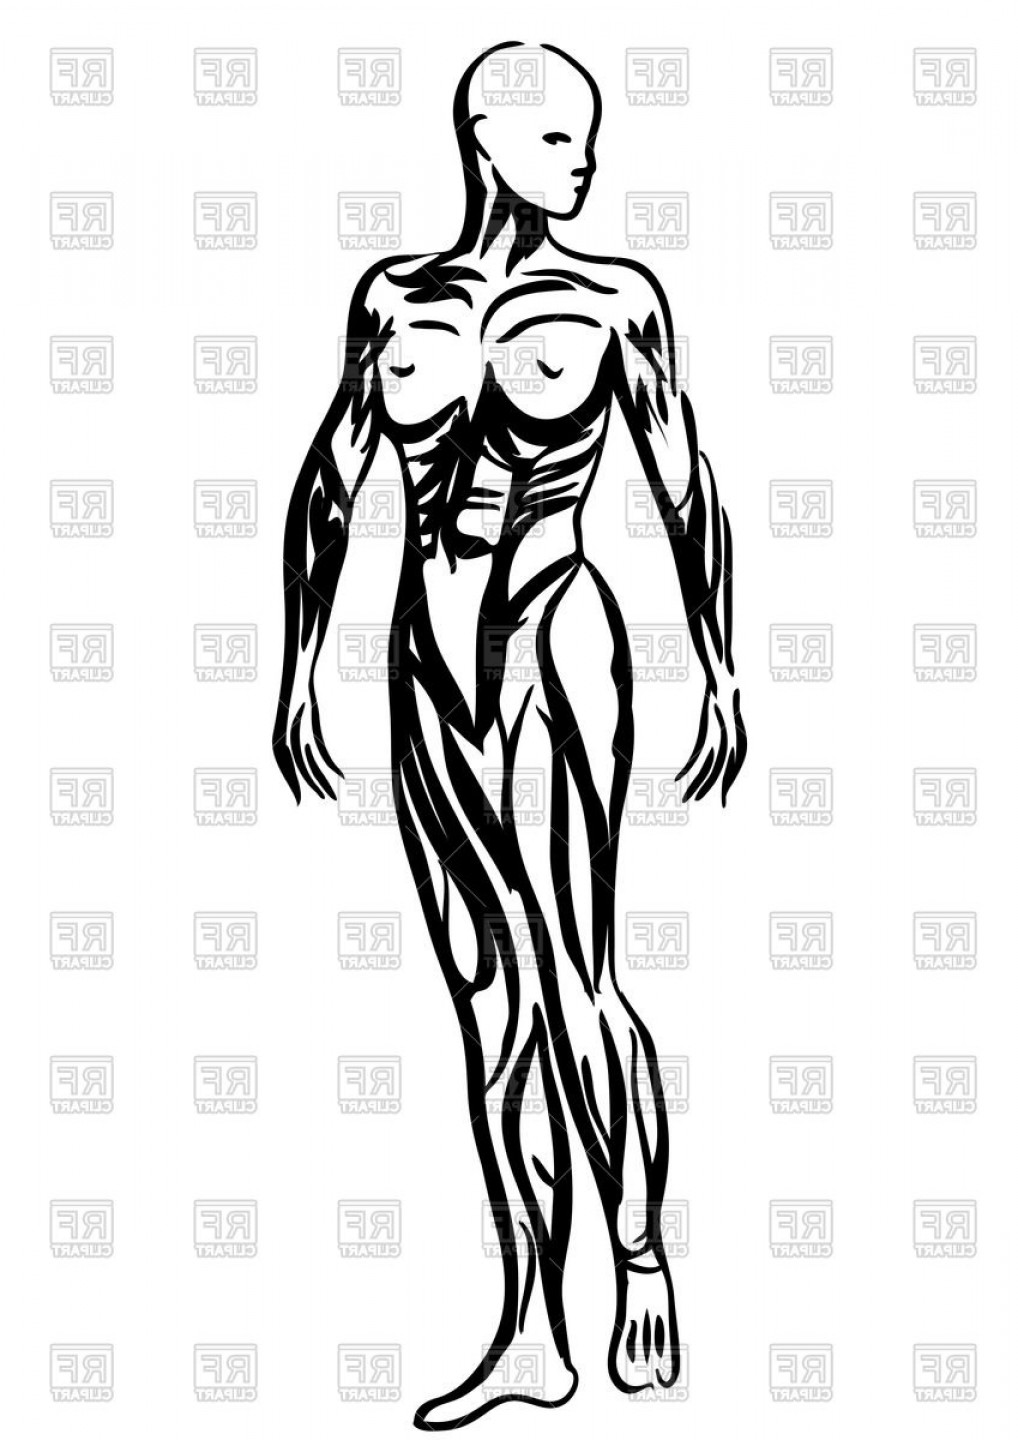 Female Human Body Outline Drawing | Free download best